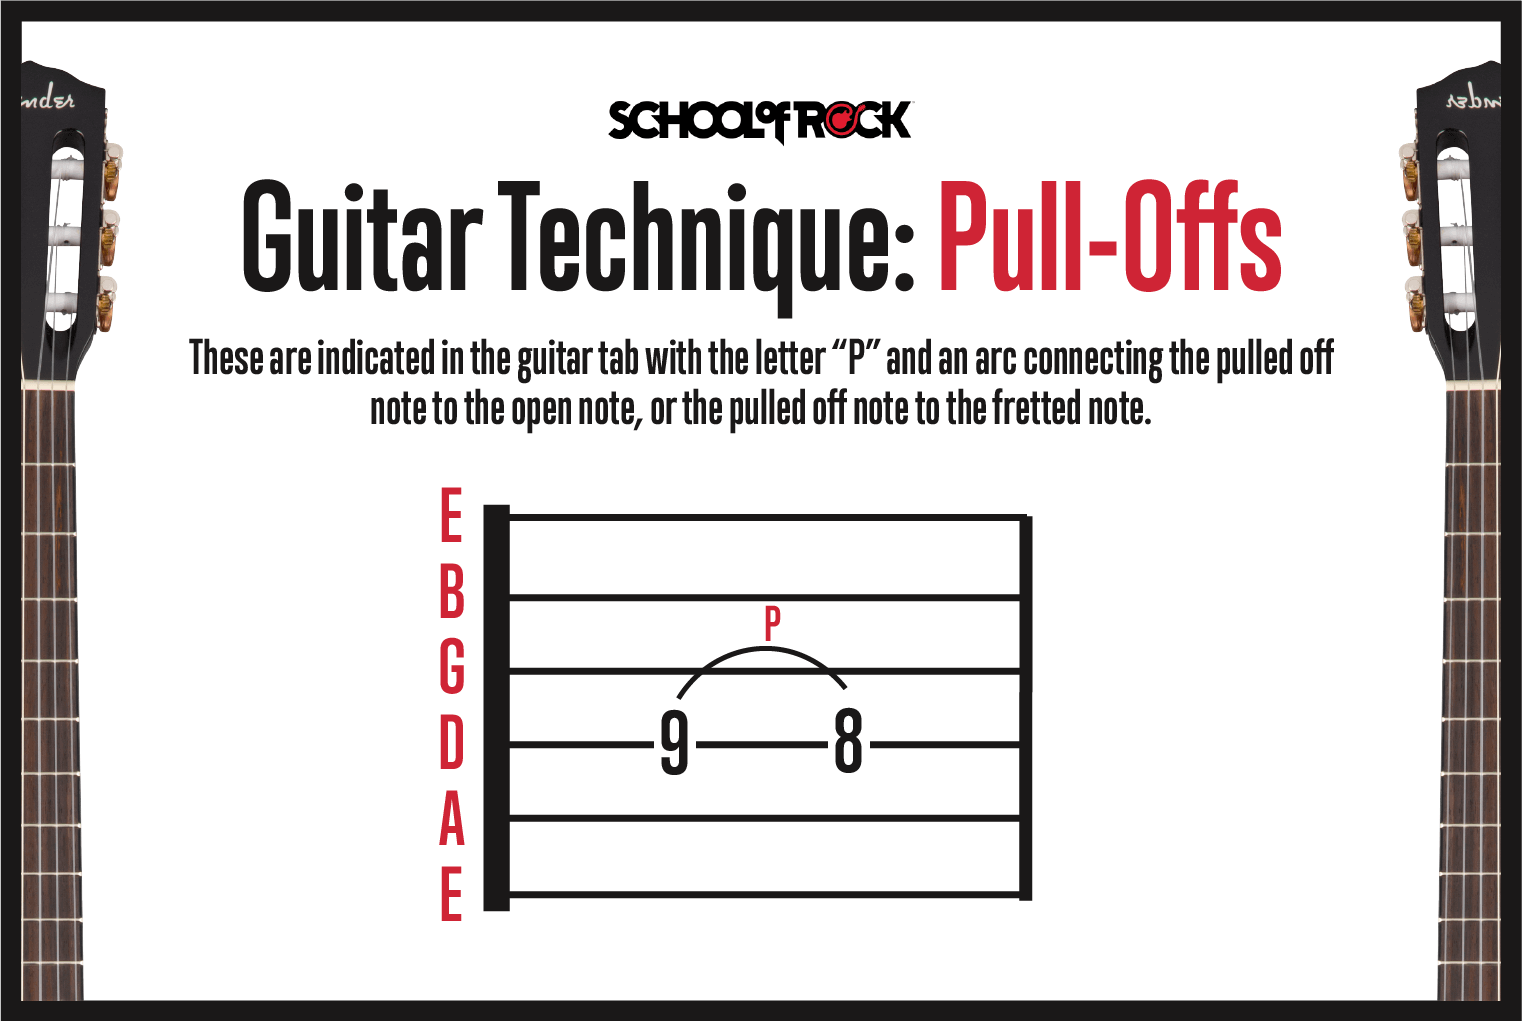 Guitar technique pull offs